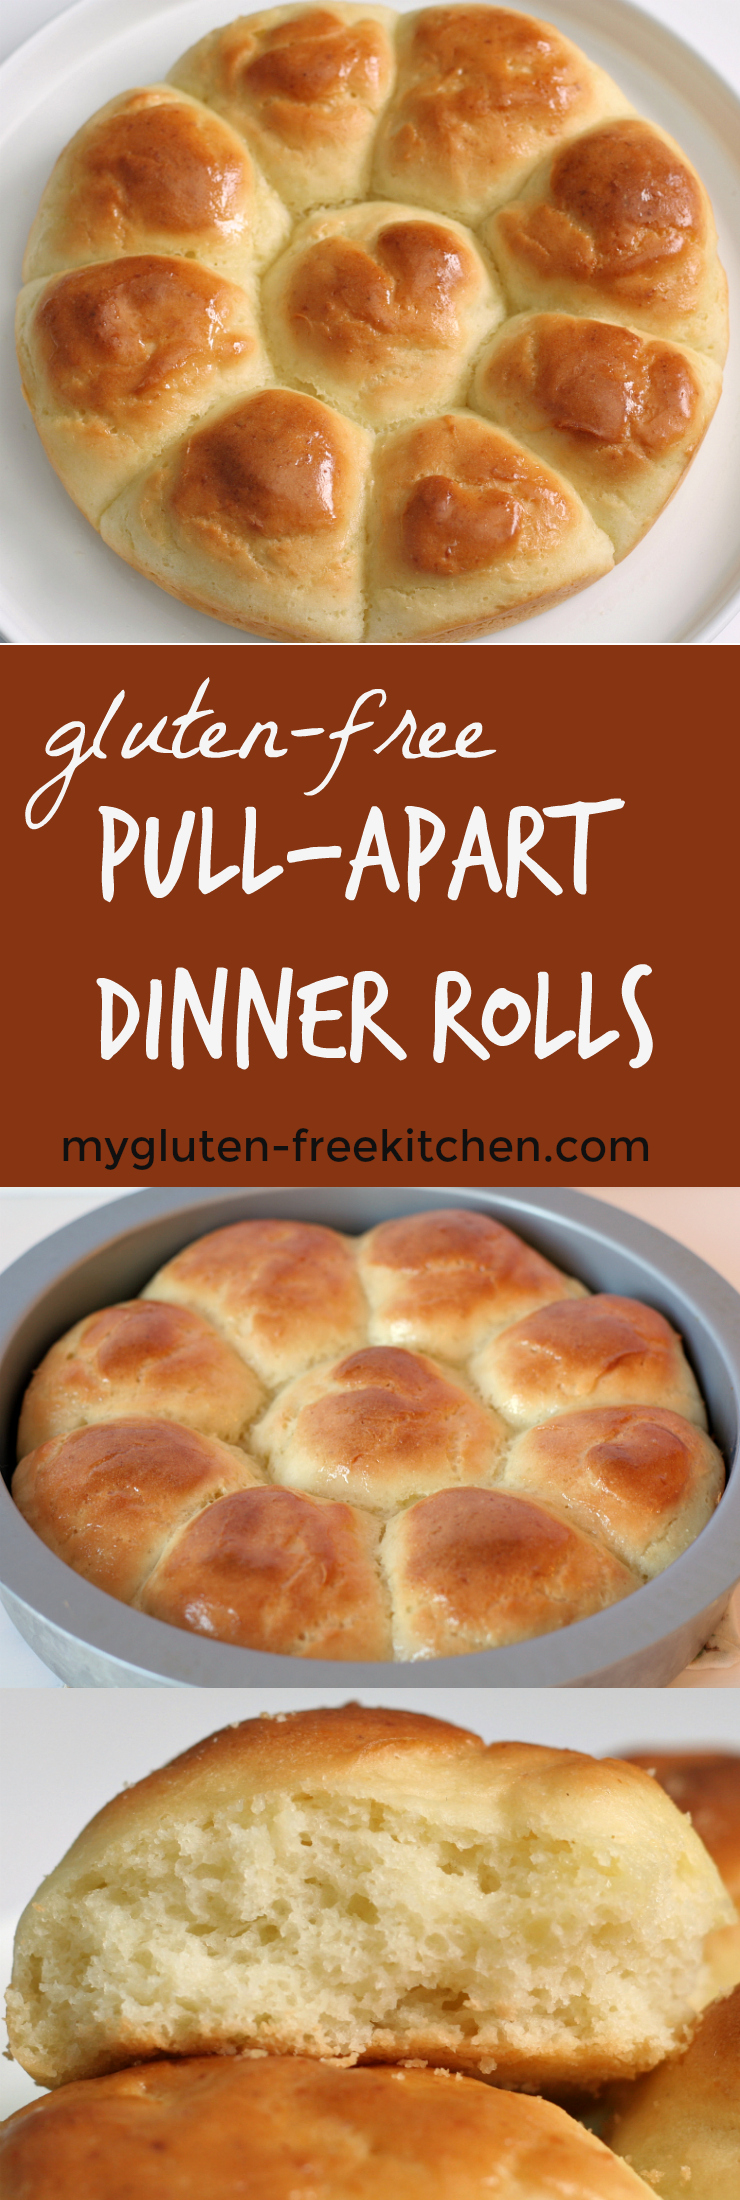 Gluten-free Pull-Apart Dinner Rolls recipe that's perfect for holiday dinners like Thanksgiving, Christmas and Easter. We enjoy these for weeknight meals too! Includes instructions for making dairy-free or egg-free too.